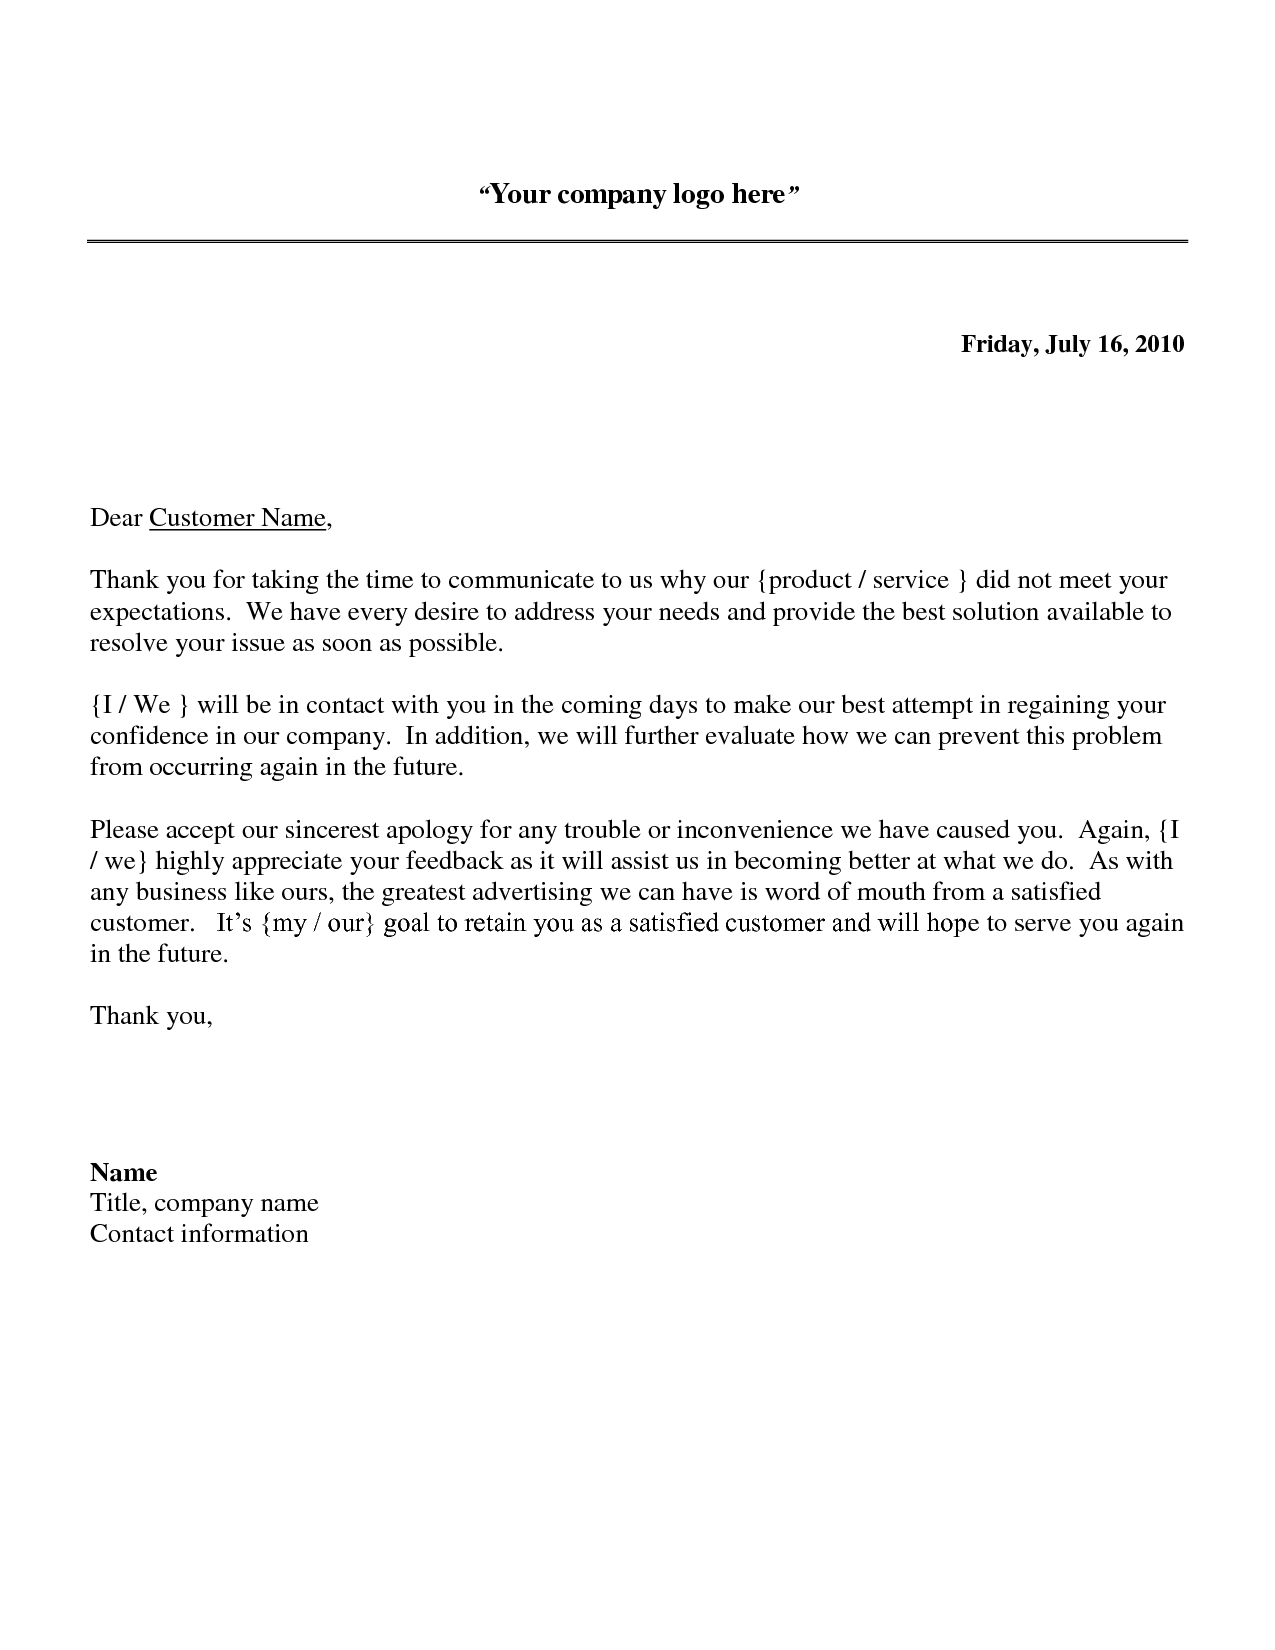 How To Write An Apology Letter To A Teacher SampleLetter Of – Sample Apology Letter to Teacher